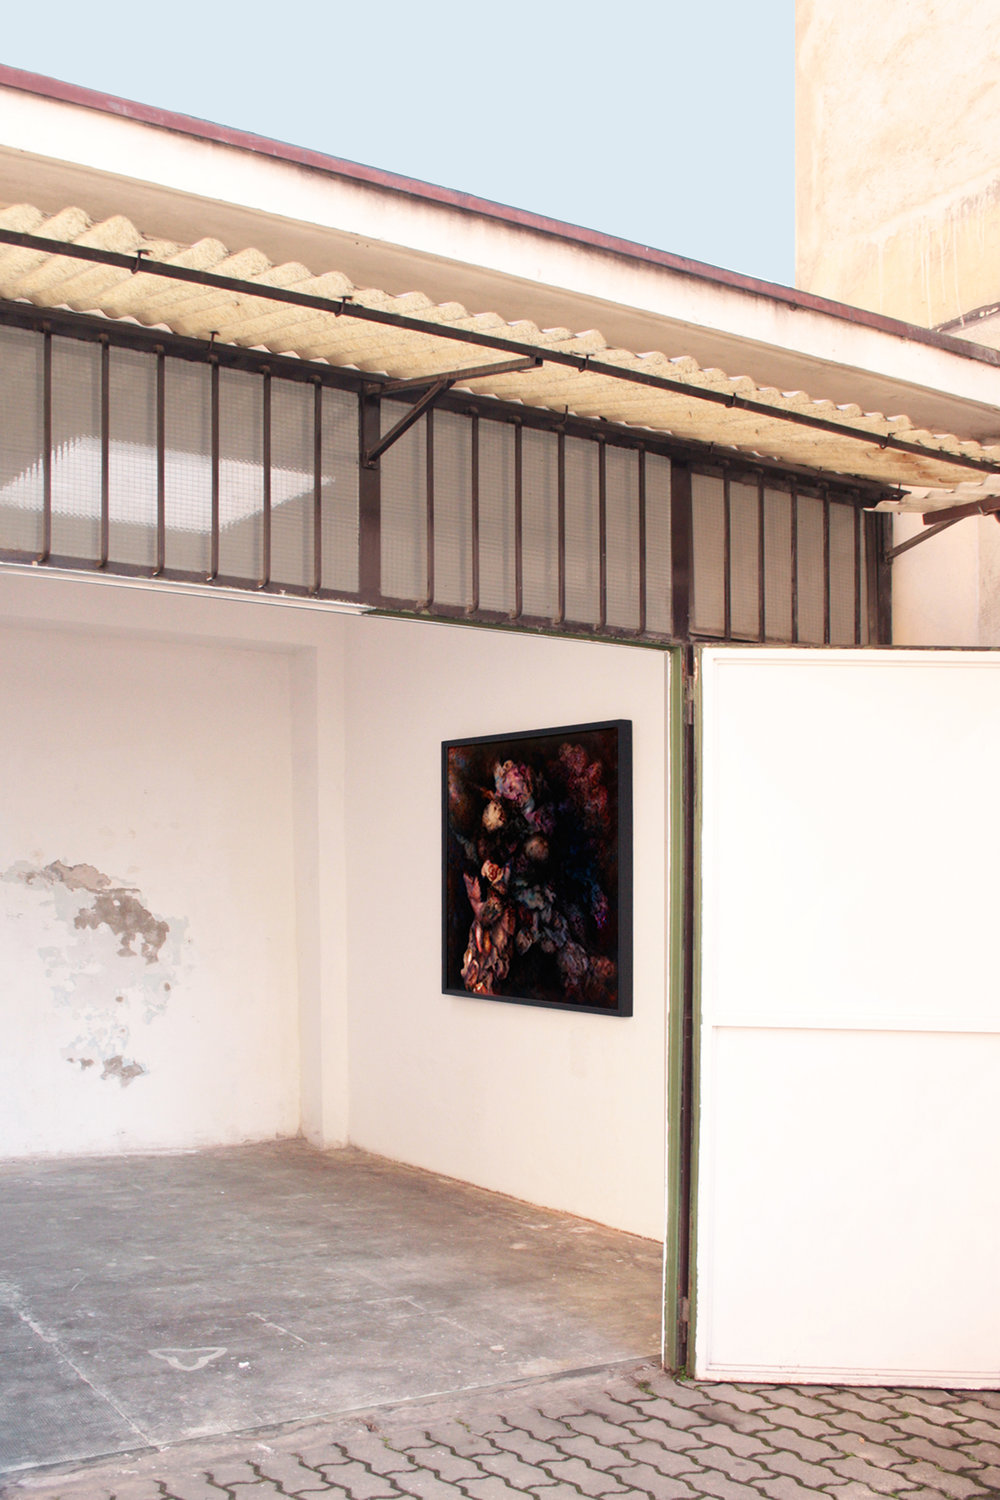 Untitled #08, 2011 - view of project at MARS, Milan